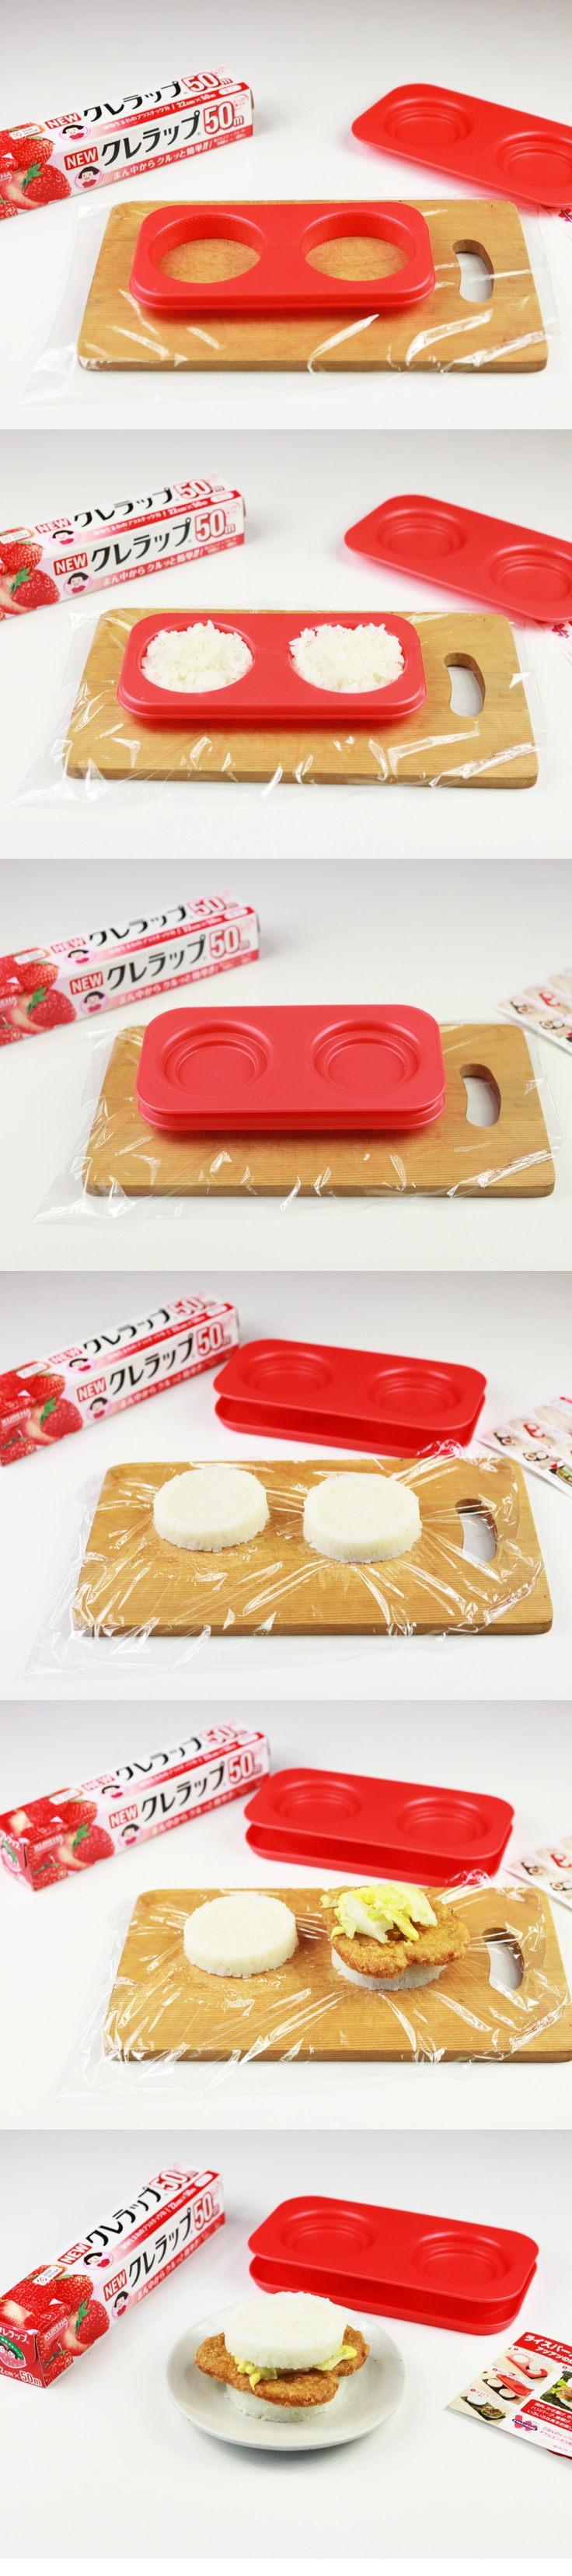 Rice Burger Maker on Bento http://en.bentoandco.com/products/rice-burger-maker